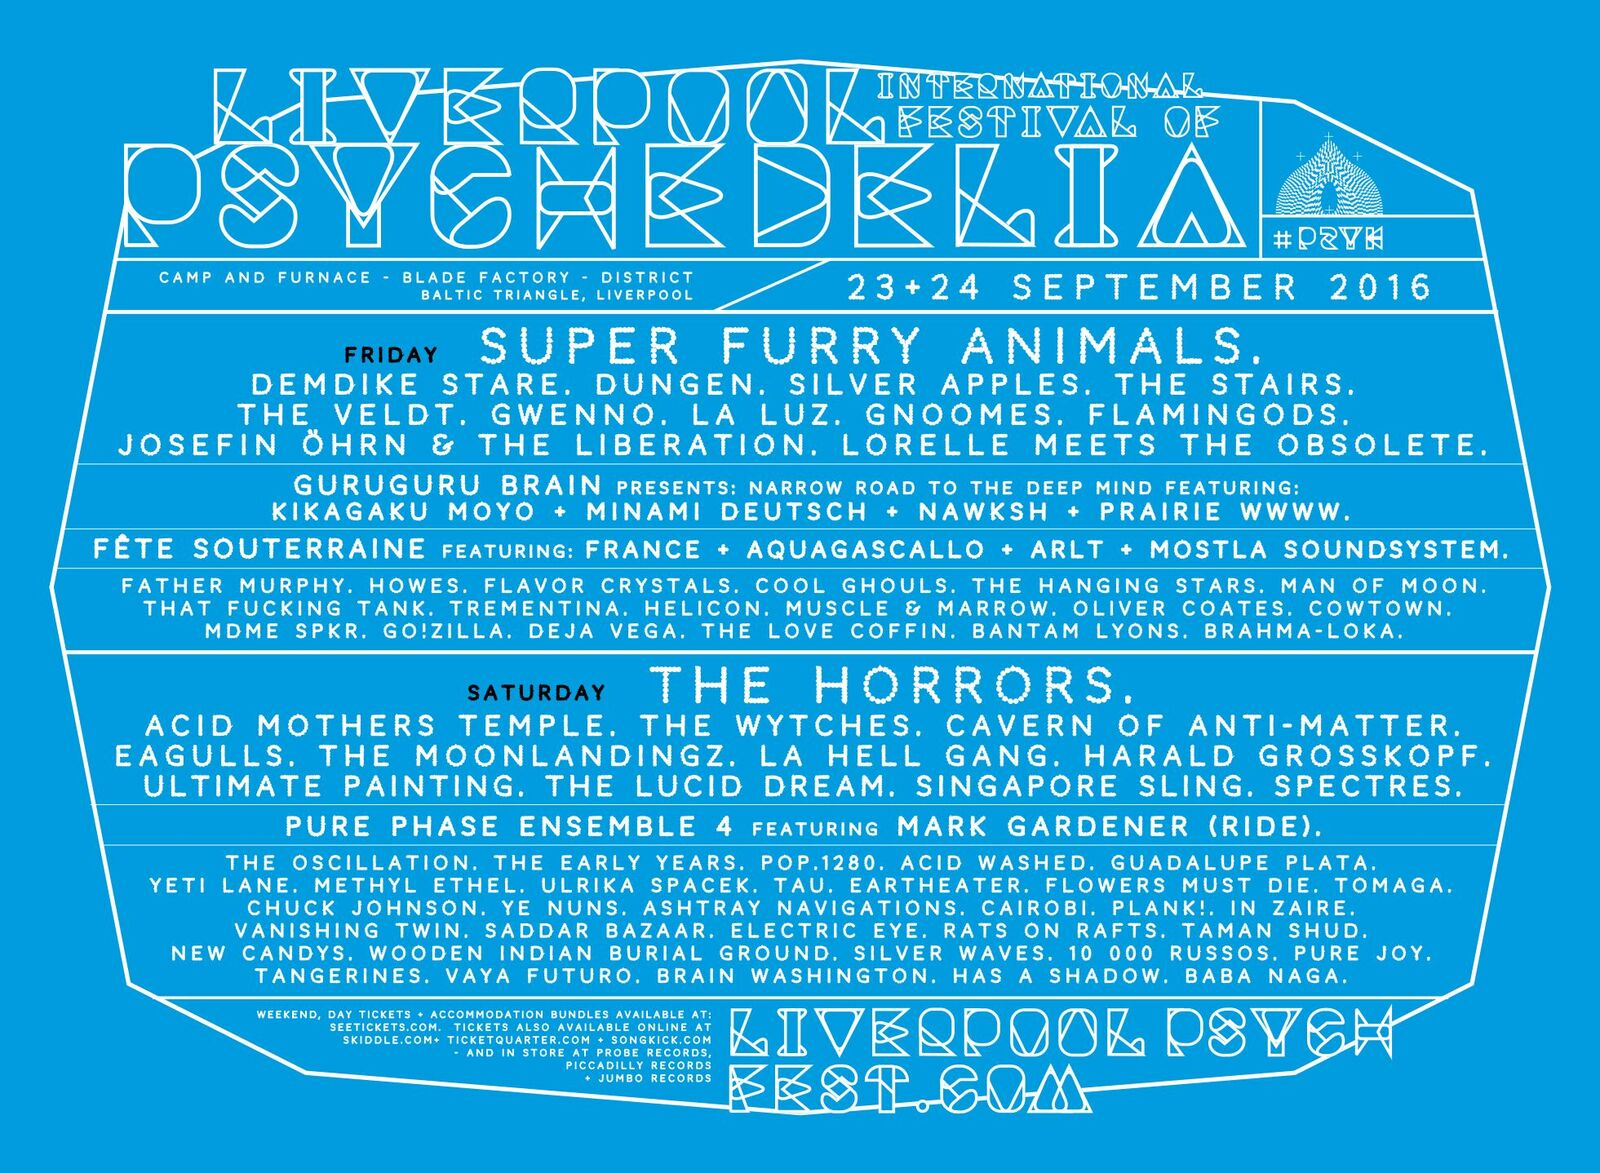 NEWS: second wave of artists announced for Liverpool Psych 2016